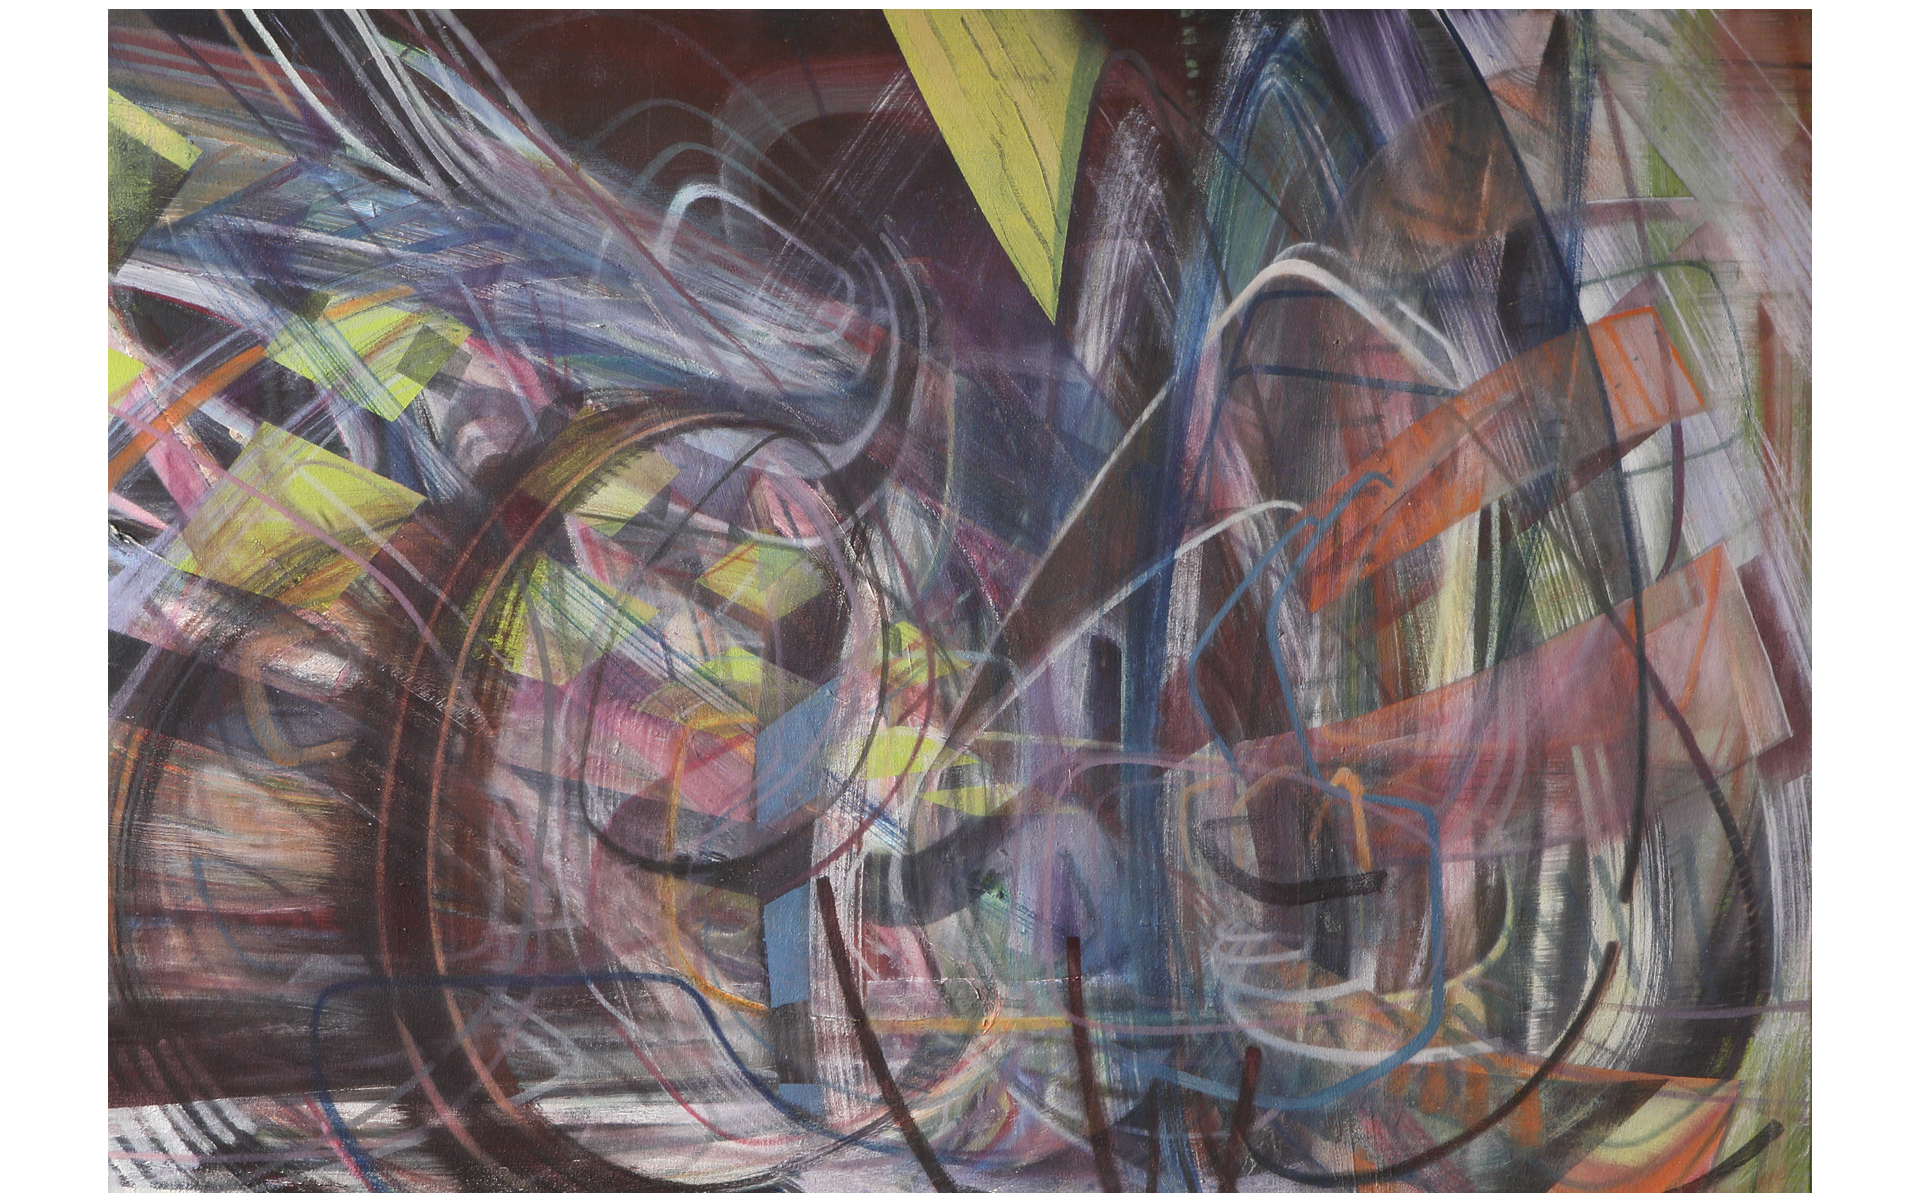 Dizzy, painting by Dipesh Parmar